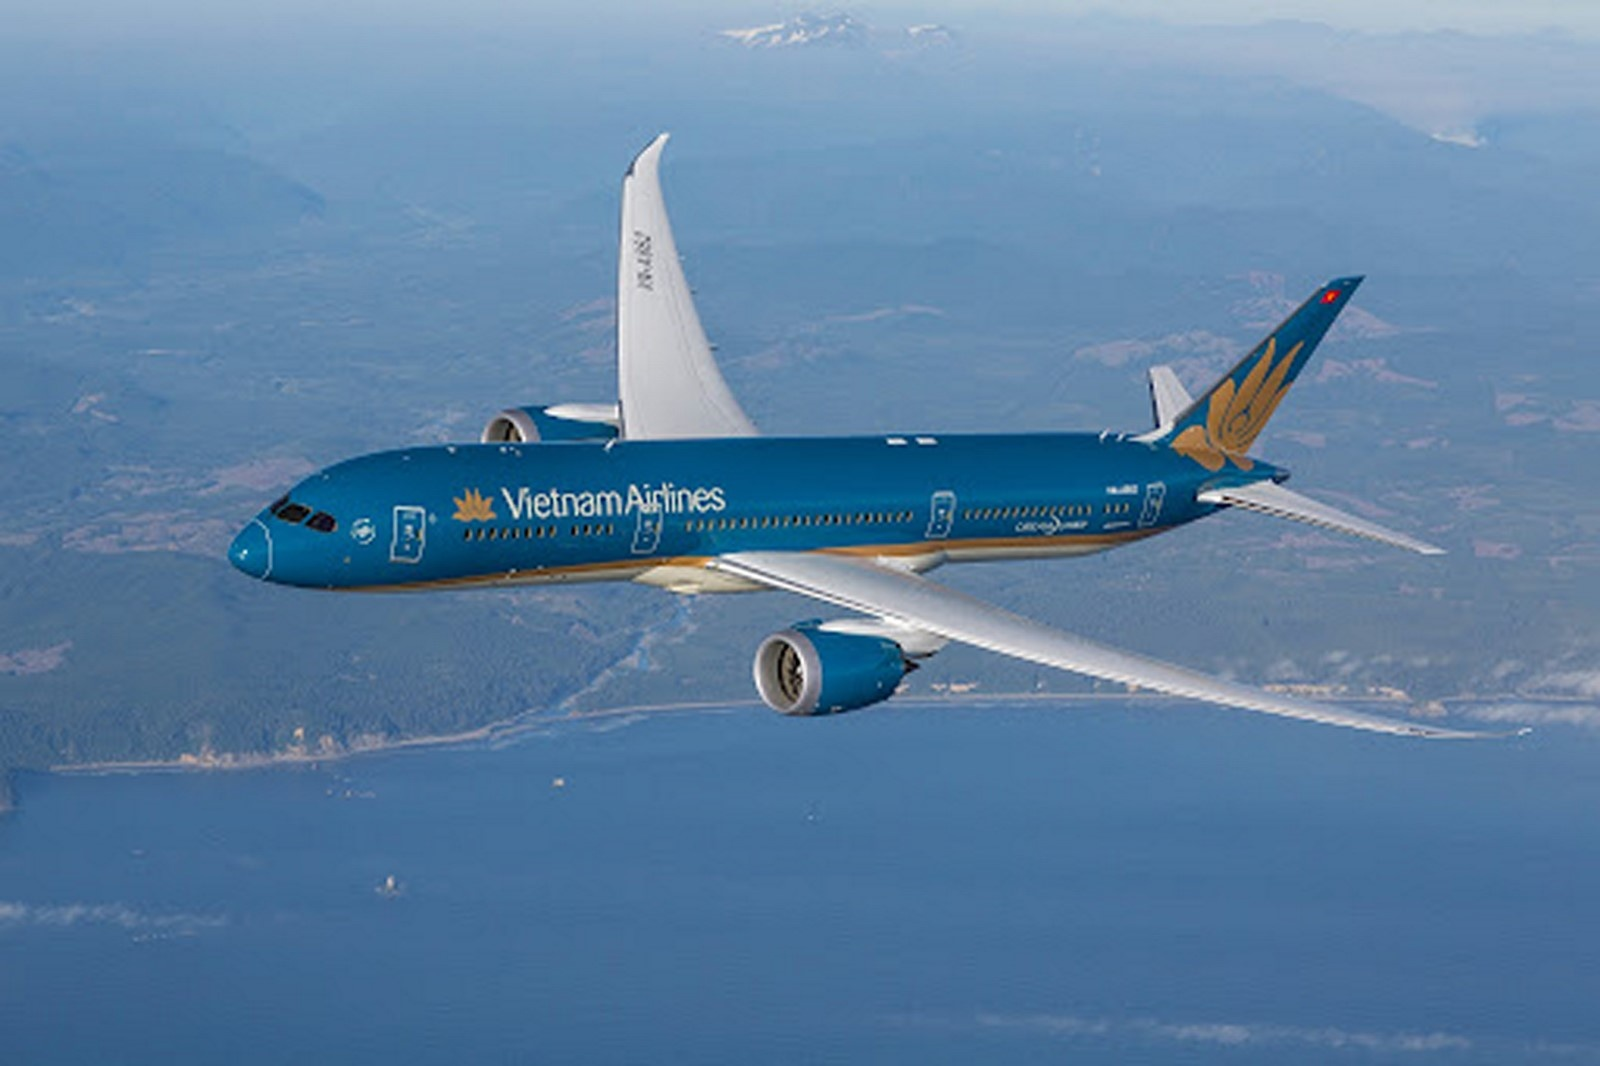 vietnam airlines cat canh trong mua dich